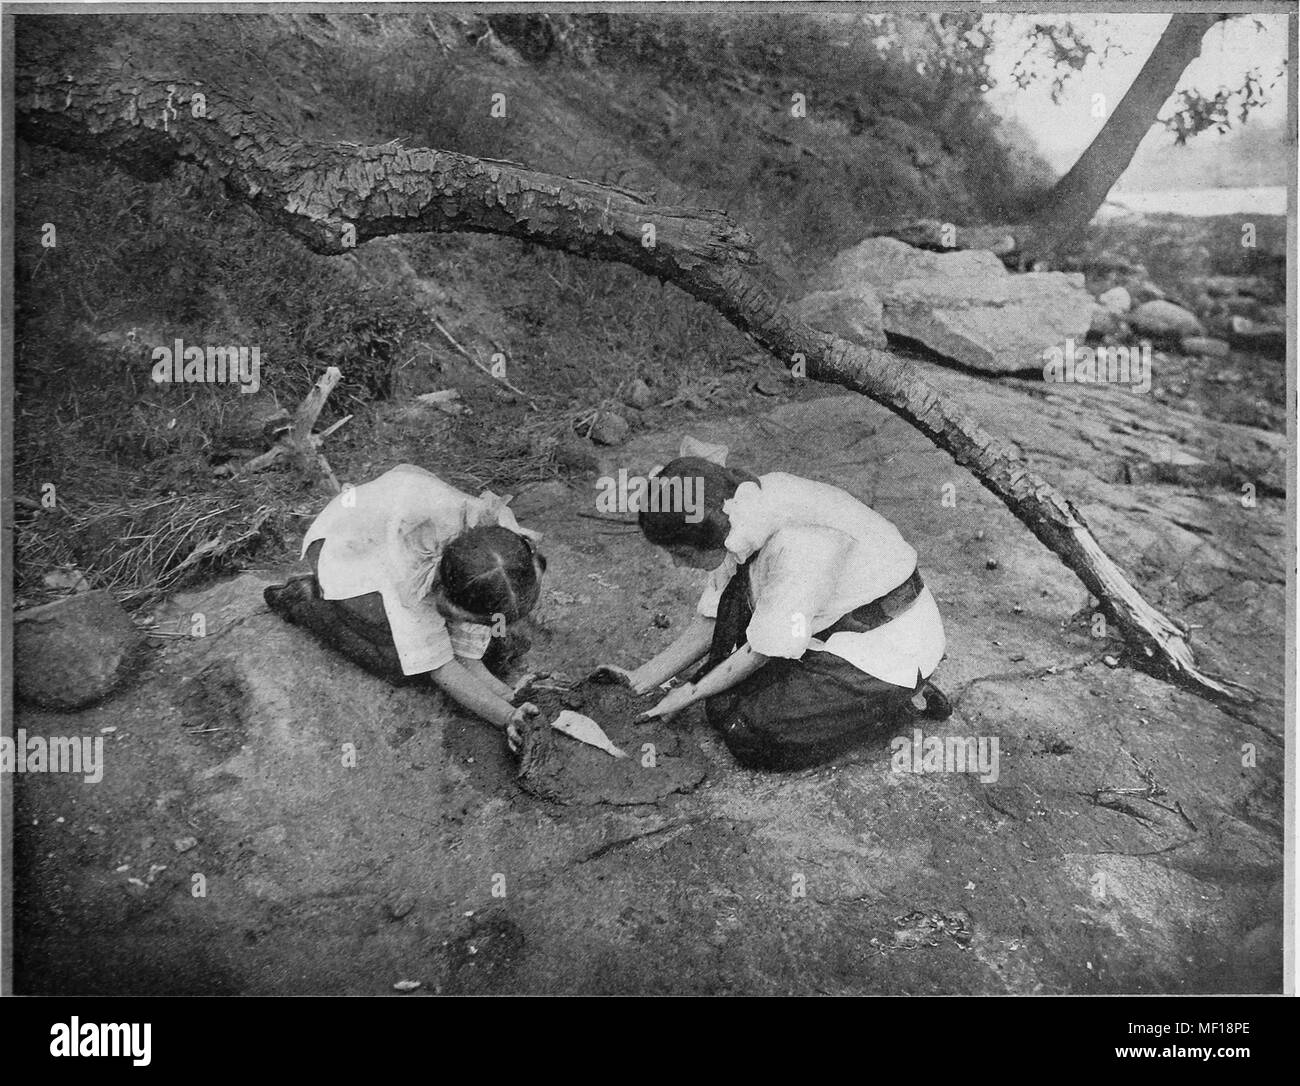 Black and white photograph of two women outdoors, preparing a fish for baking by rubbing soft clay on it, 1905. Courtesy Internet Archive. () - Stock Image